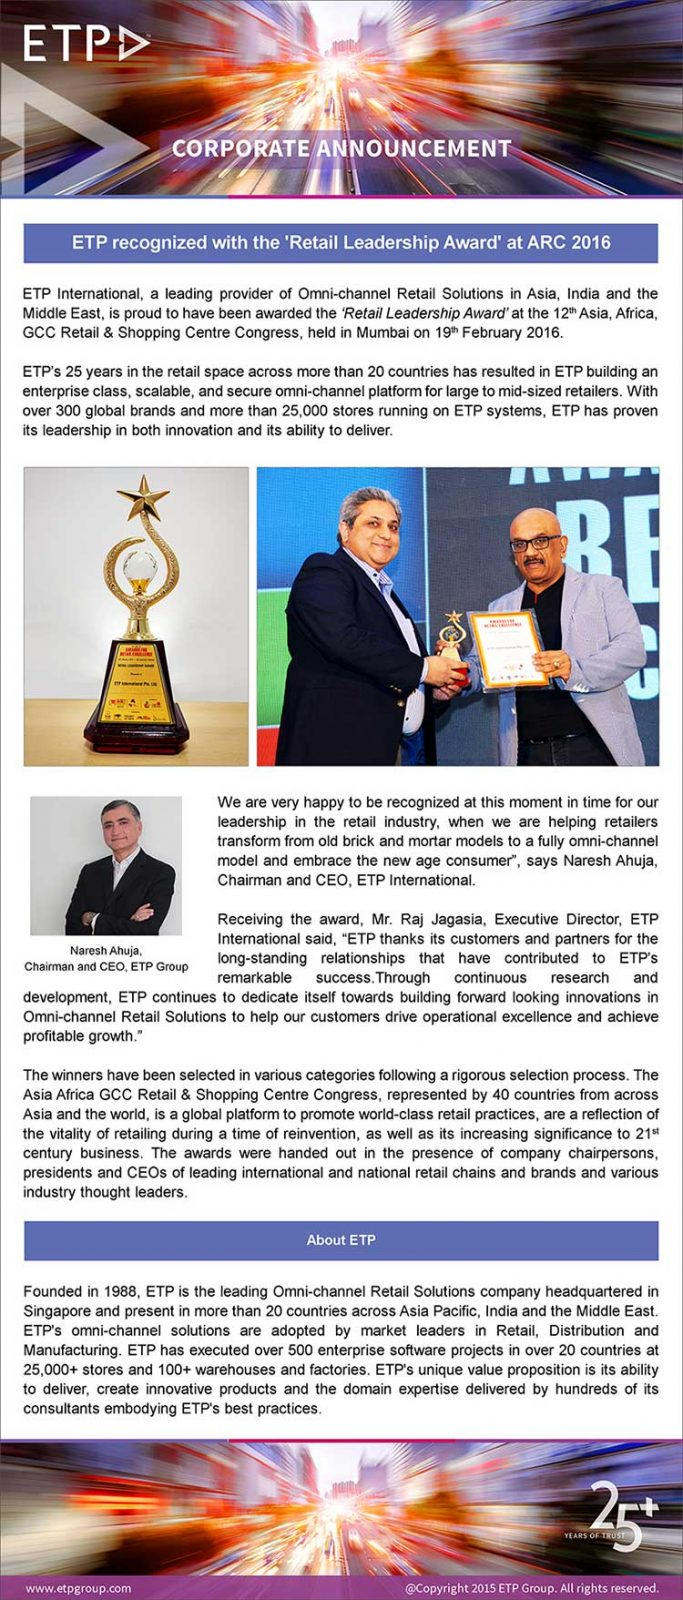 ETP recognized with the ´Retail Leadership Award´ at ARC 2016